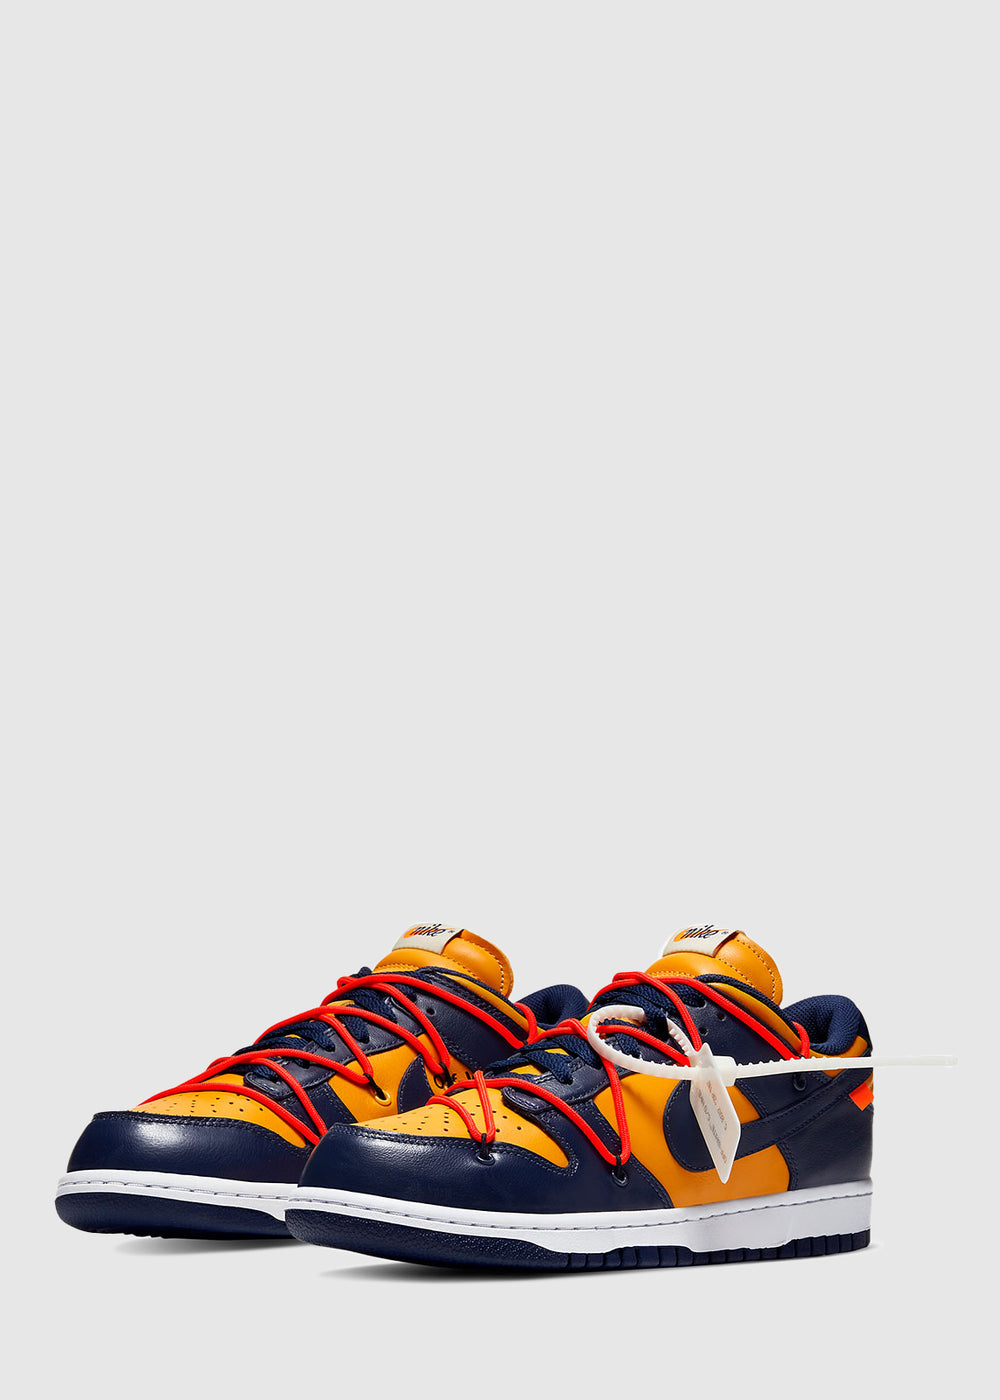 nike-x-off-white-dunk-low-navy-2